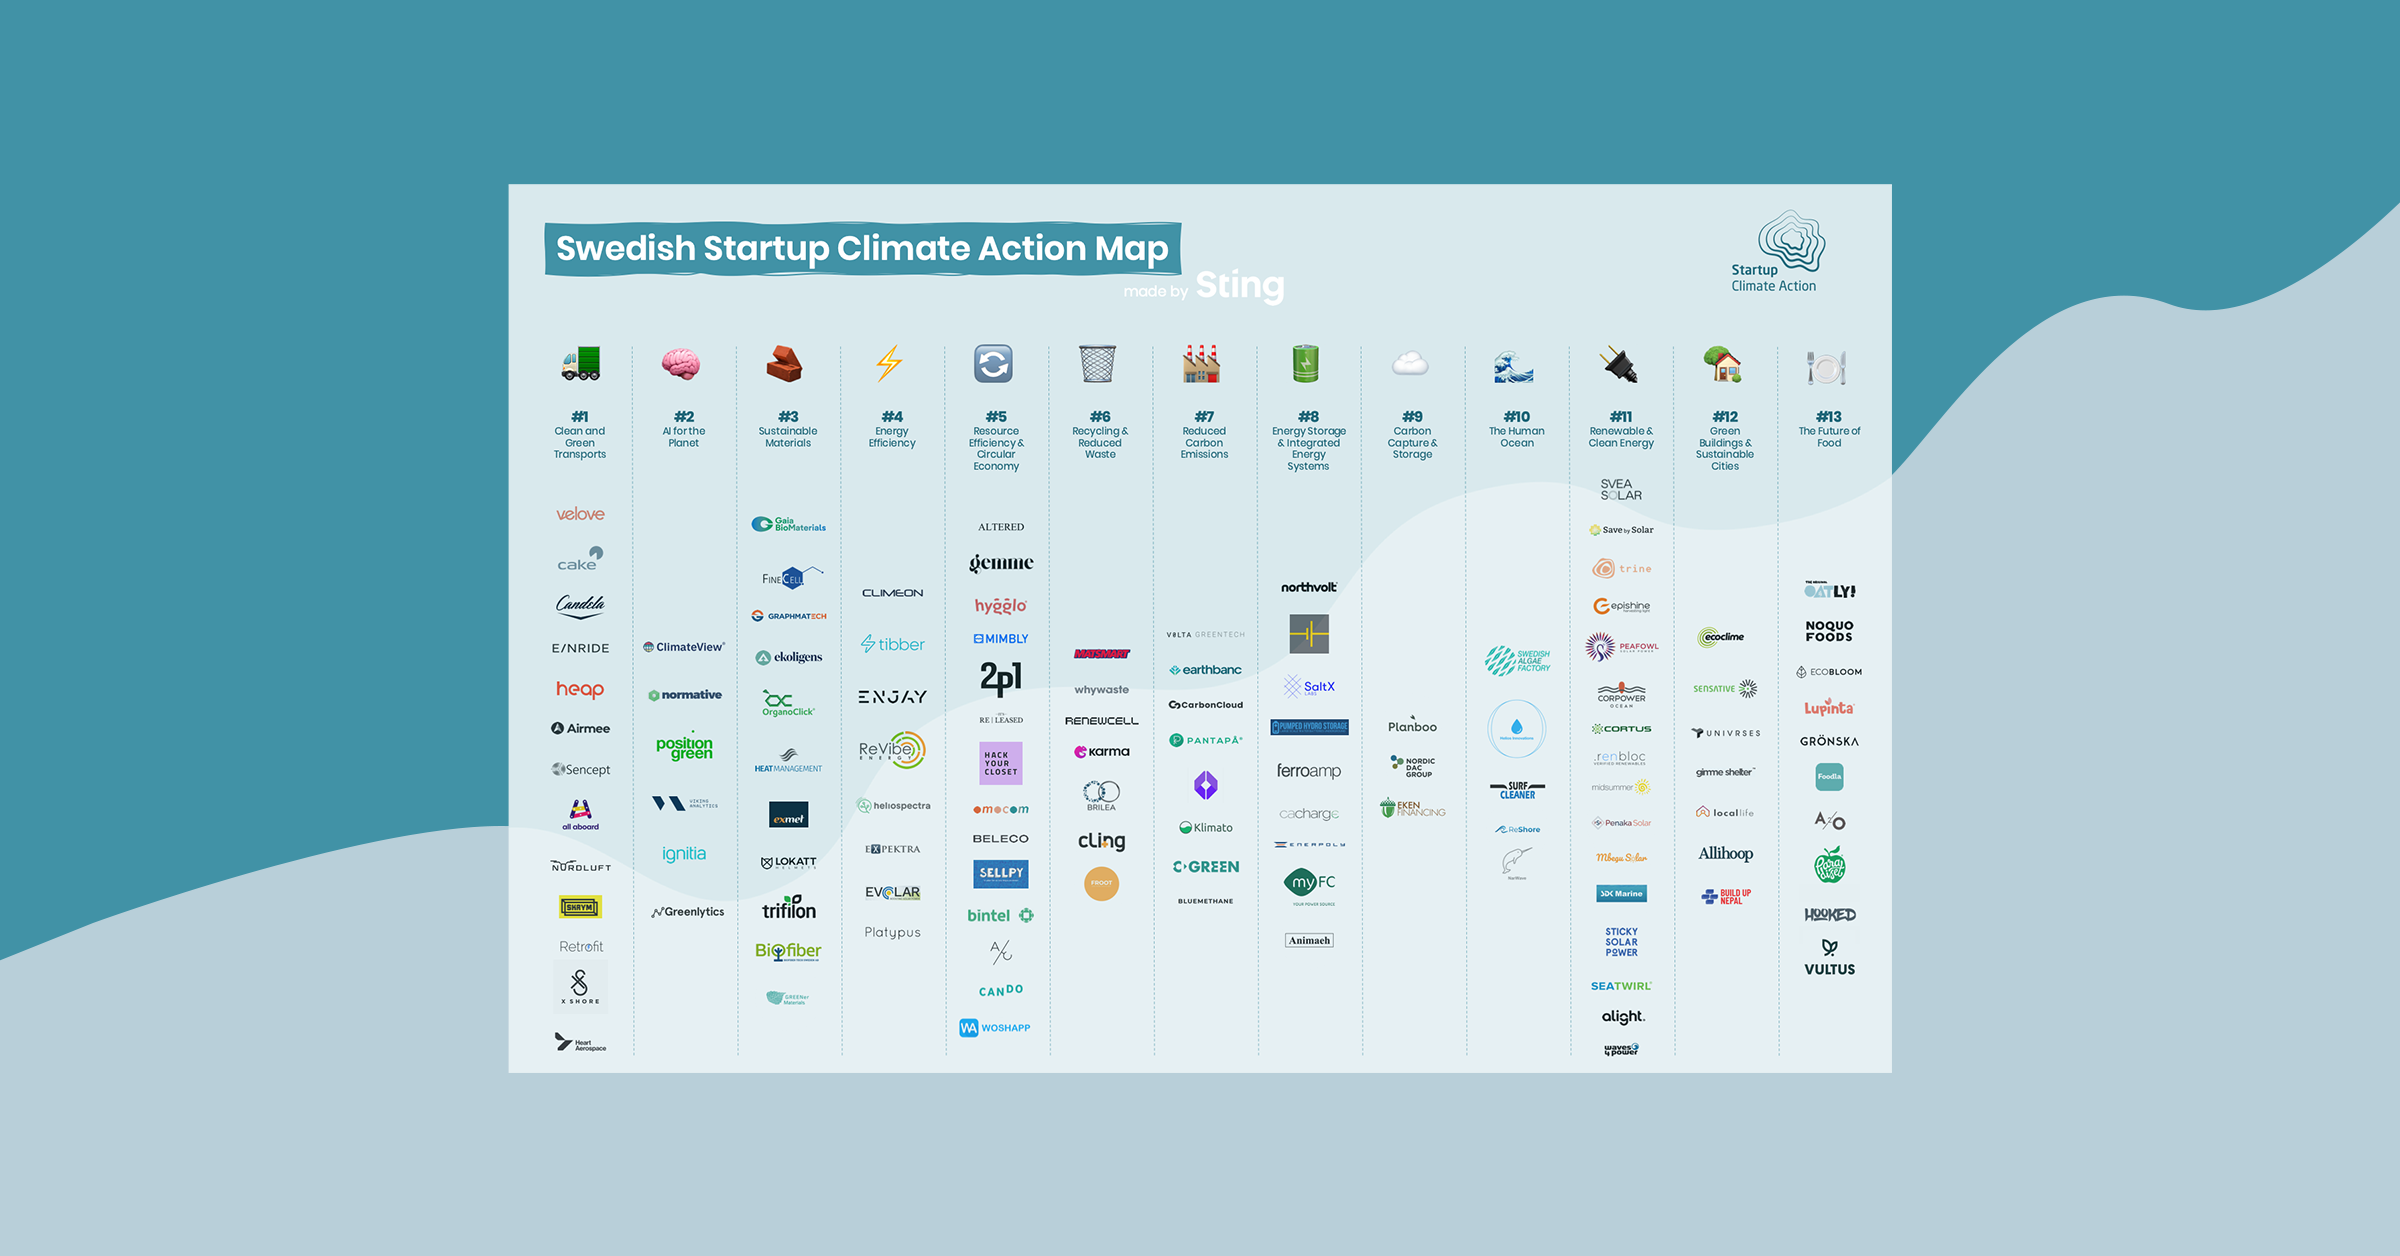 Swedish Startup Climate Action Map 0.1 – who's missing?